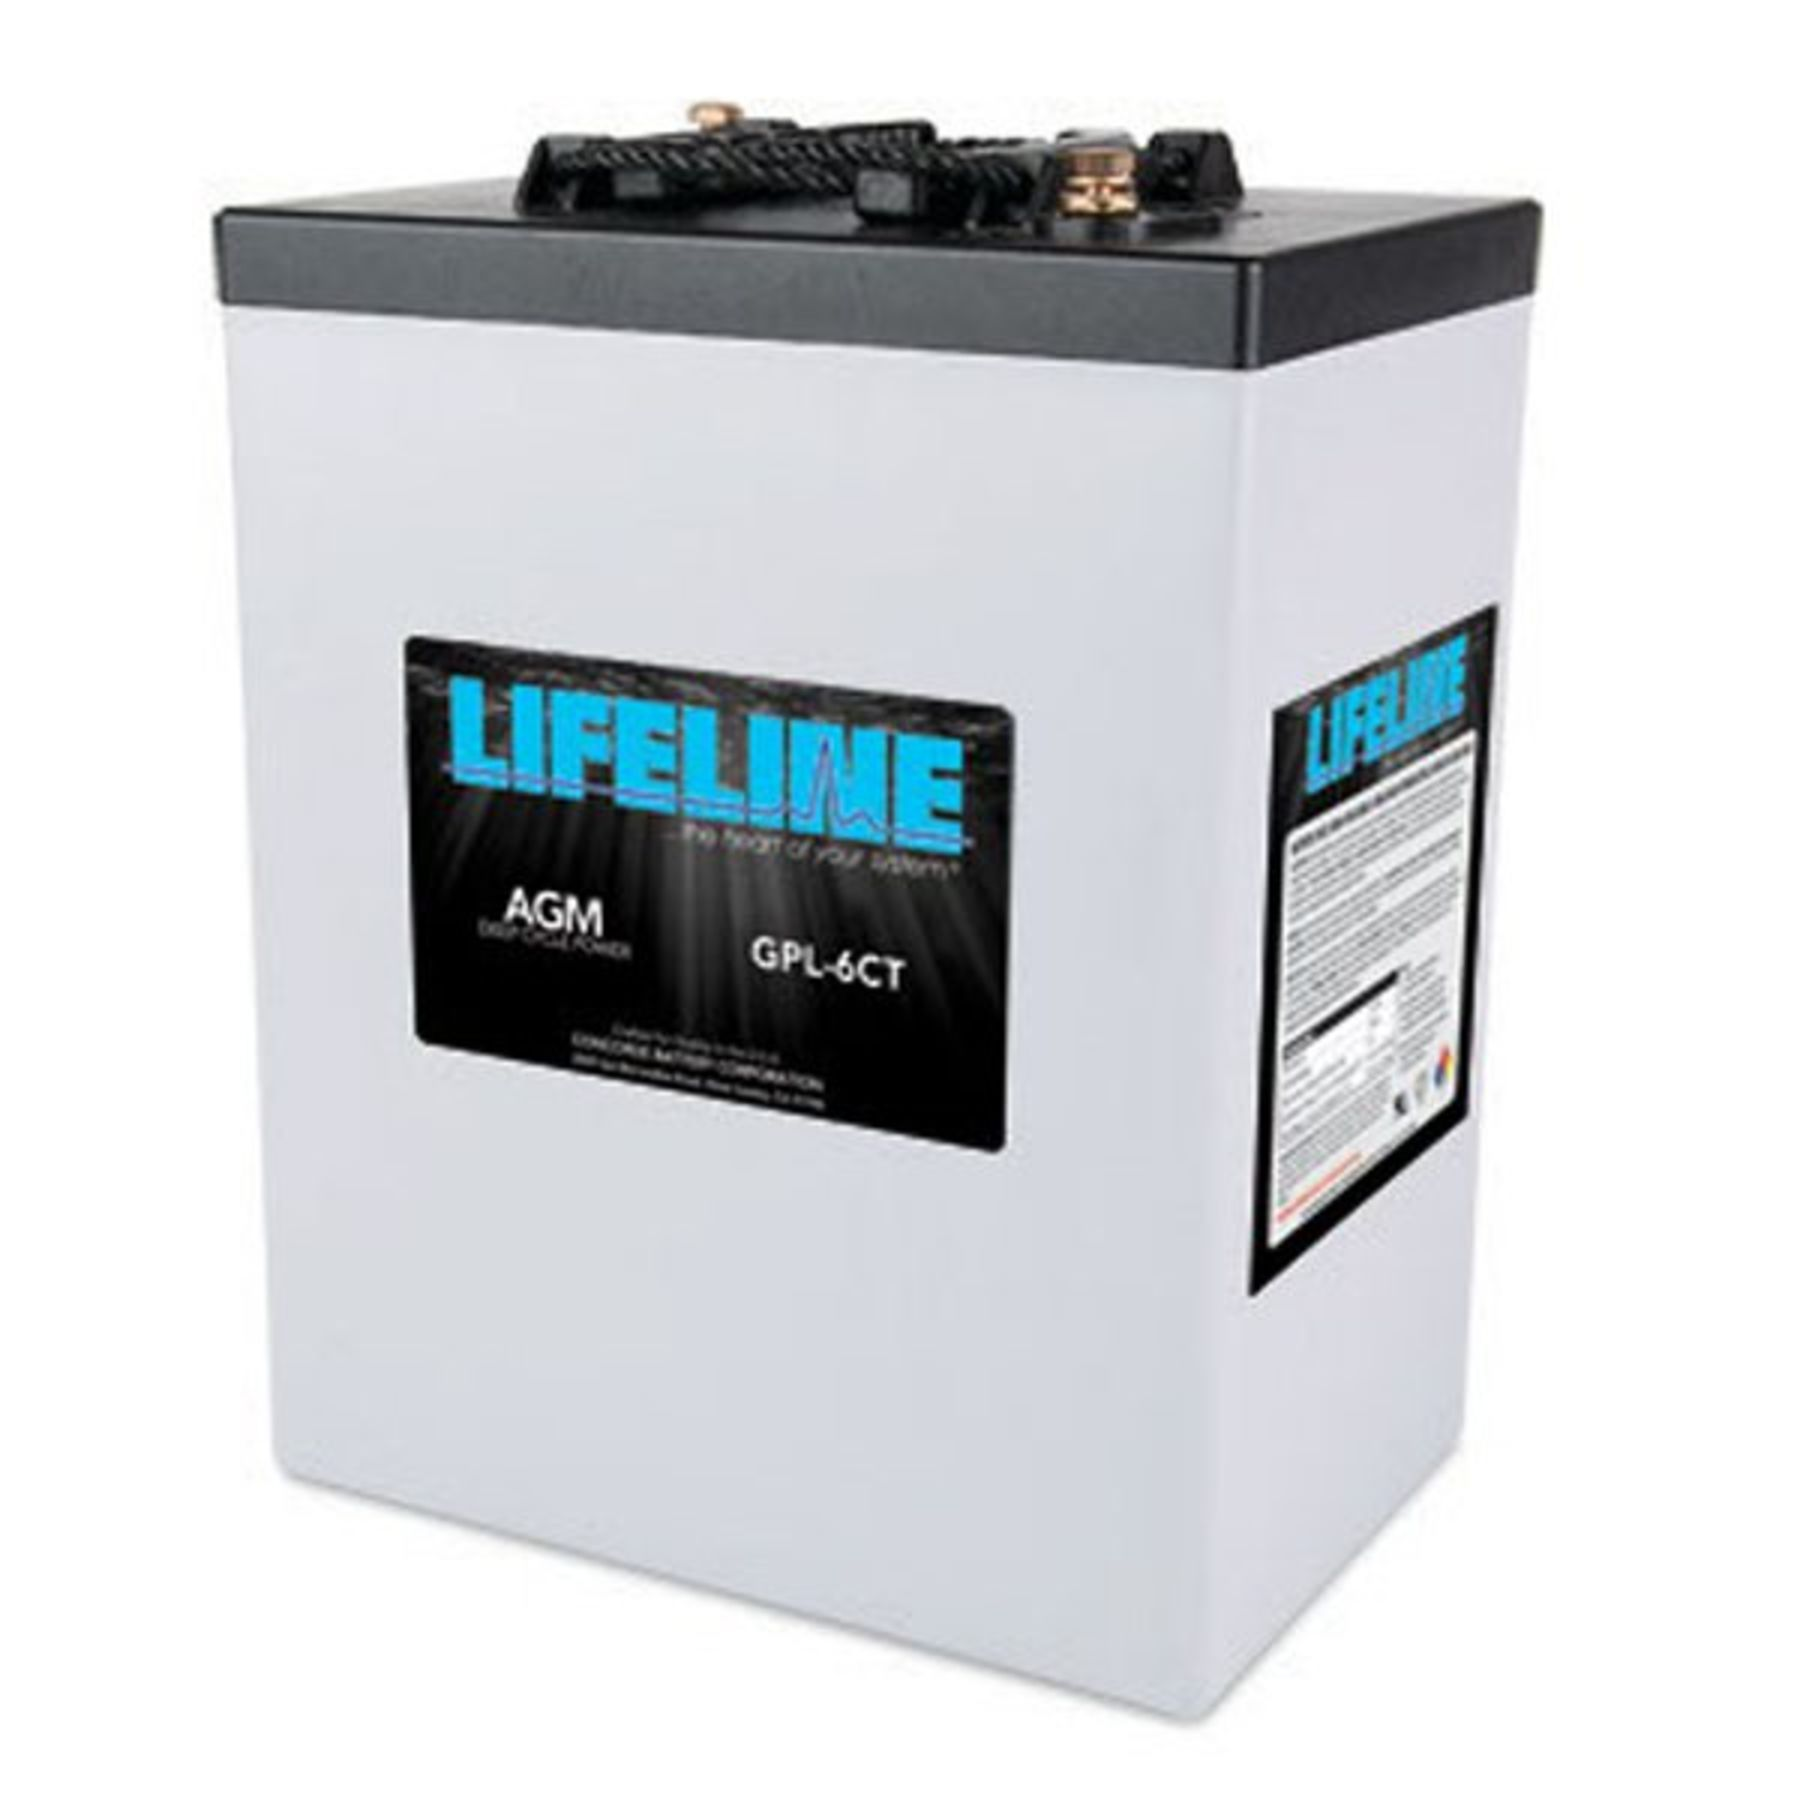 Lifeline 6v 300 AH Deep Cycle Sealed AGM Battery - GPL-6CT